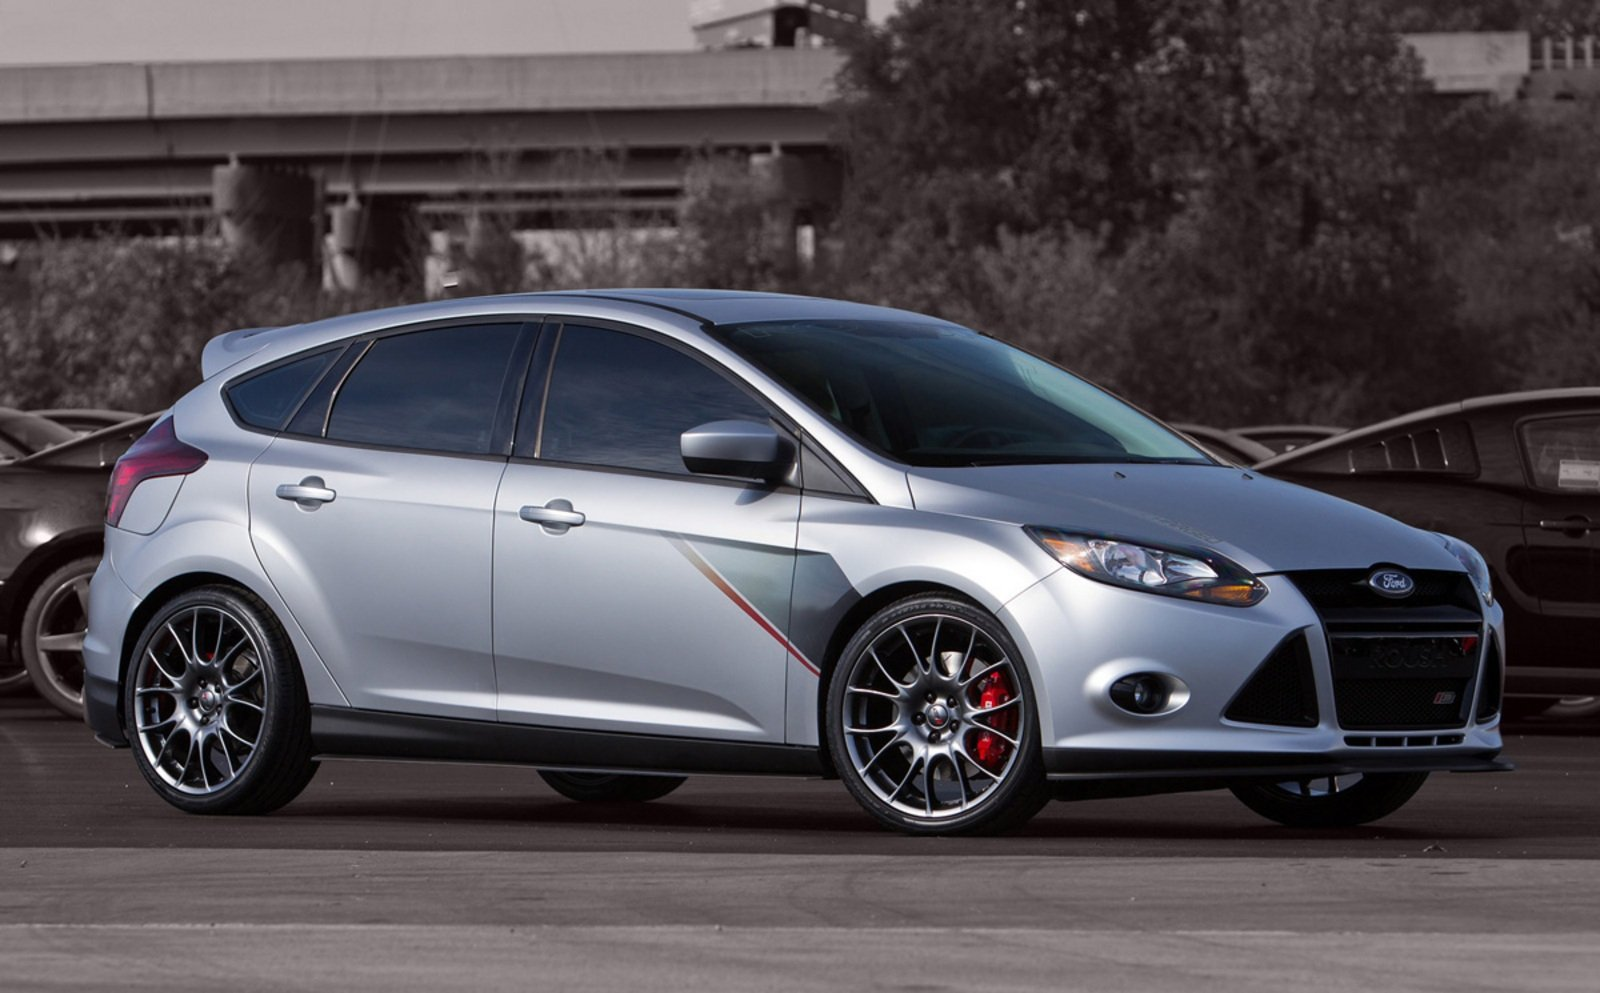 2012 ford focus by roush performance review top speed for 2012 ford focus exterior accessories